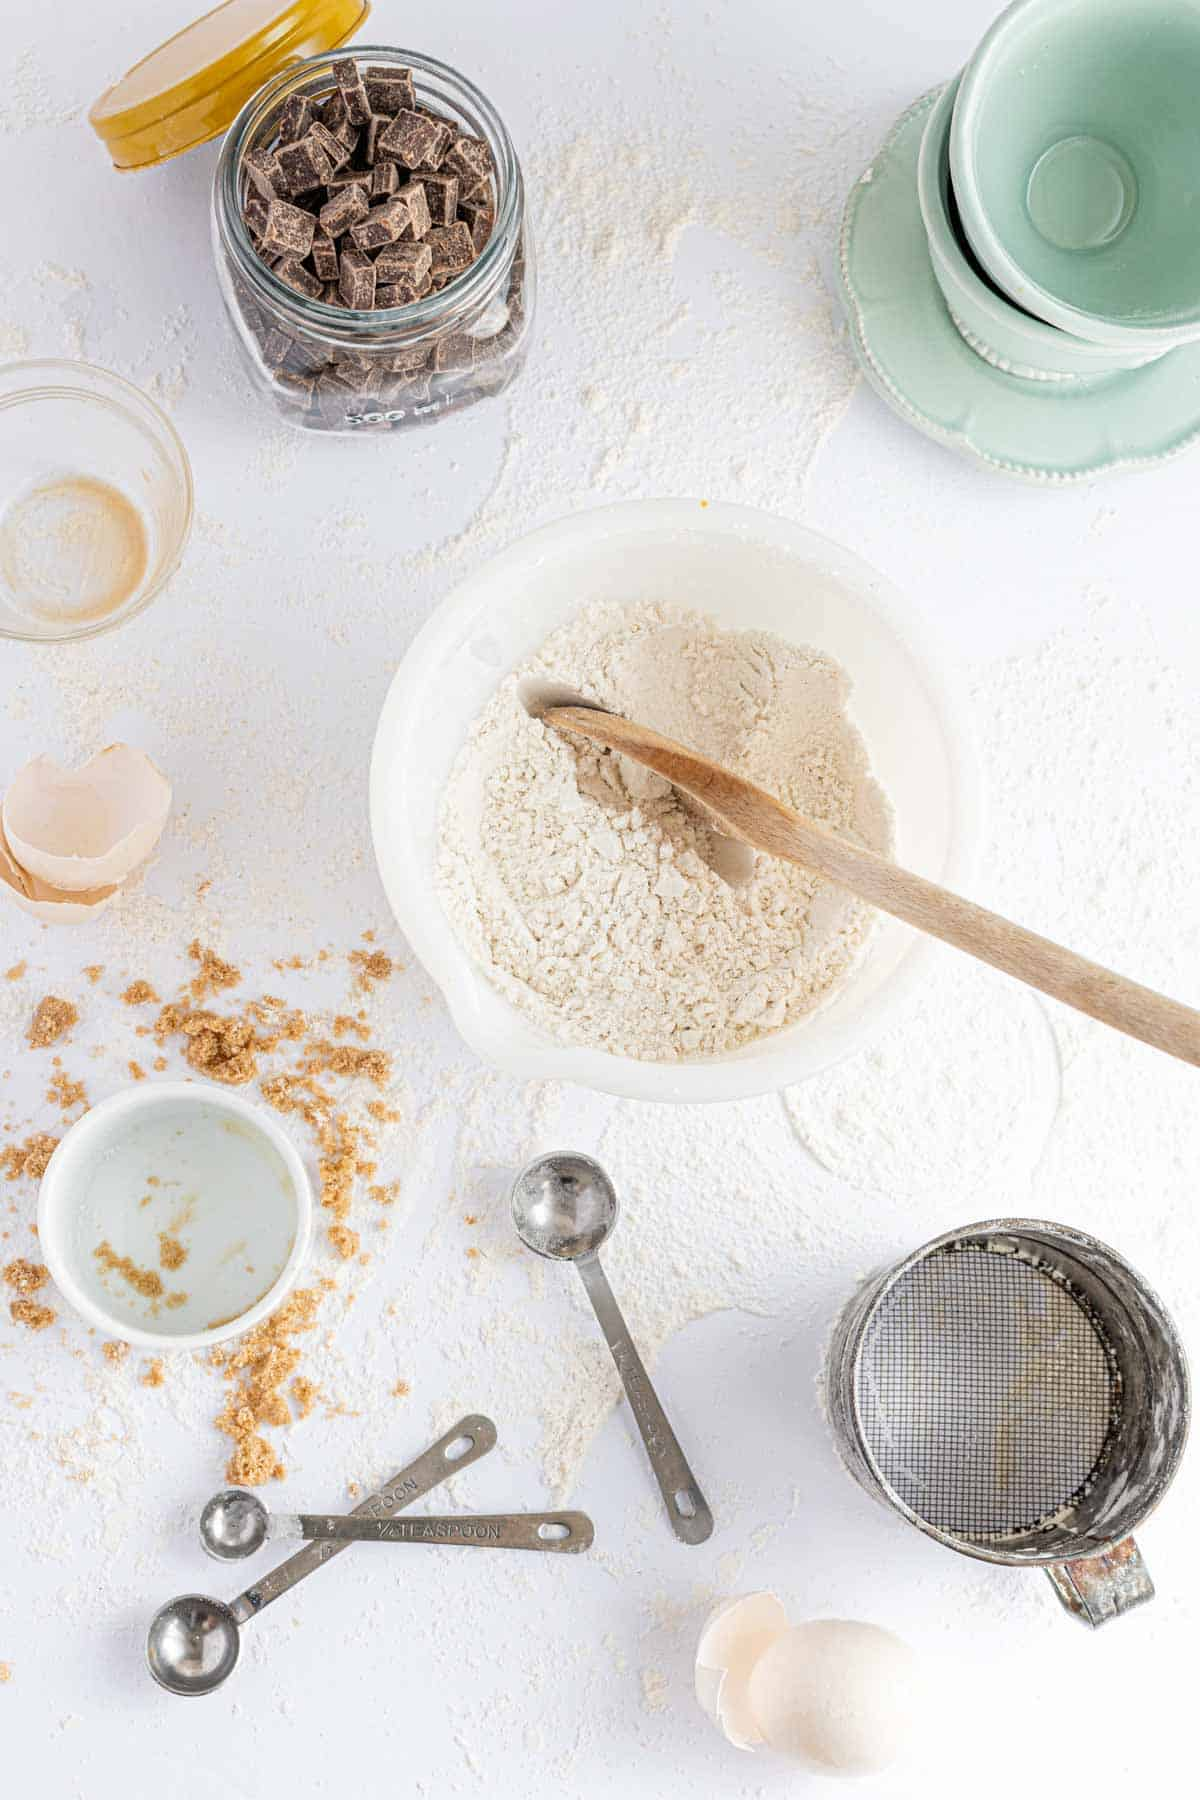 The Combined Dry Ingredients on a White Countertop in a White Bowl